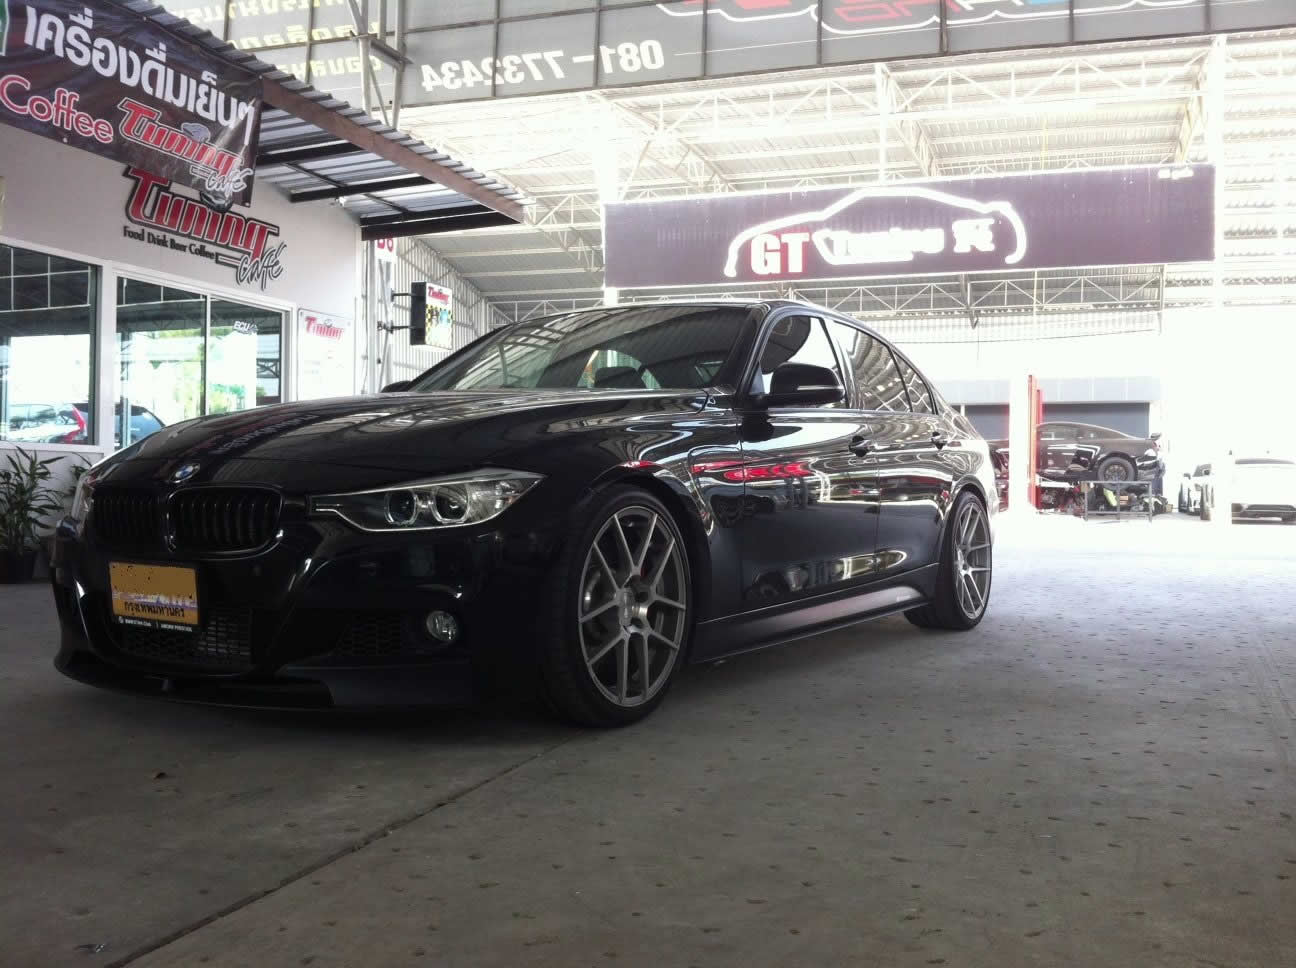 Bmw F30 320d 2013 Ecu Remapping Results